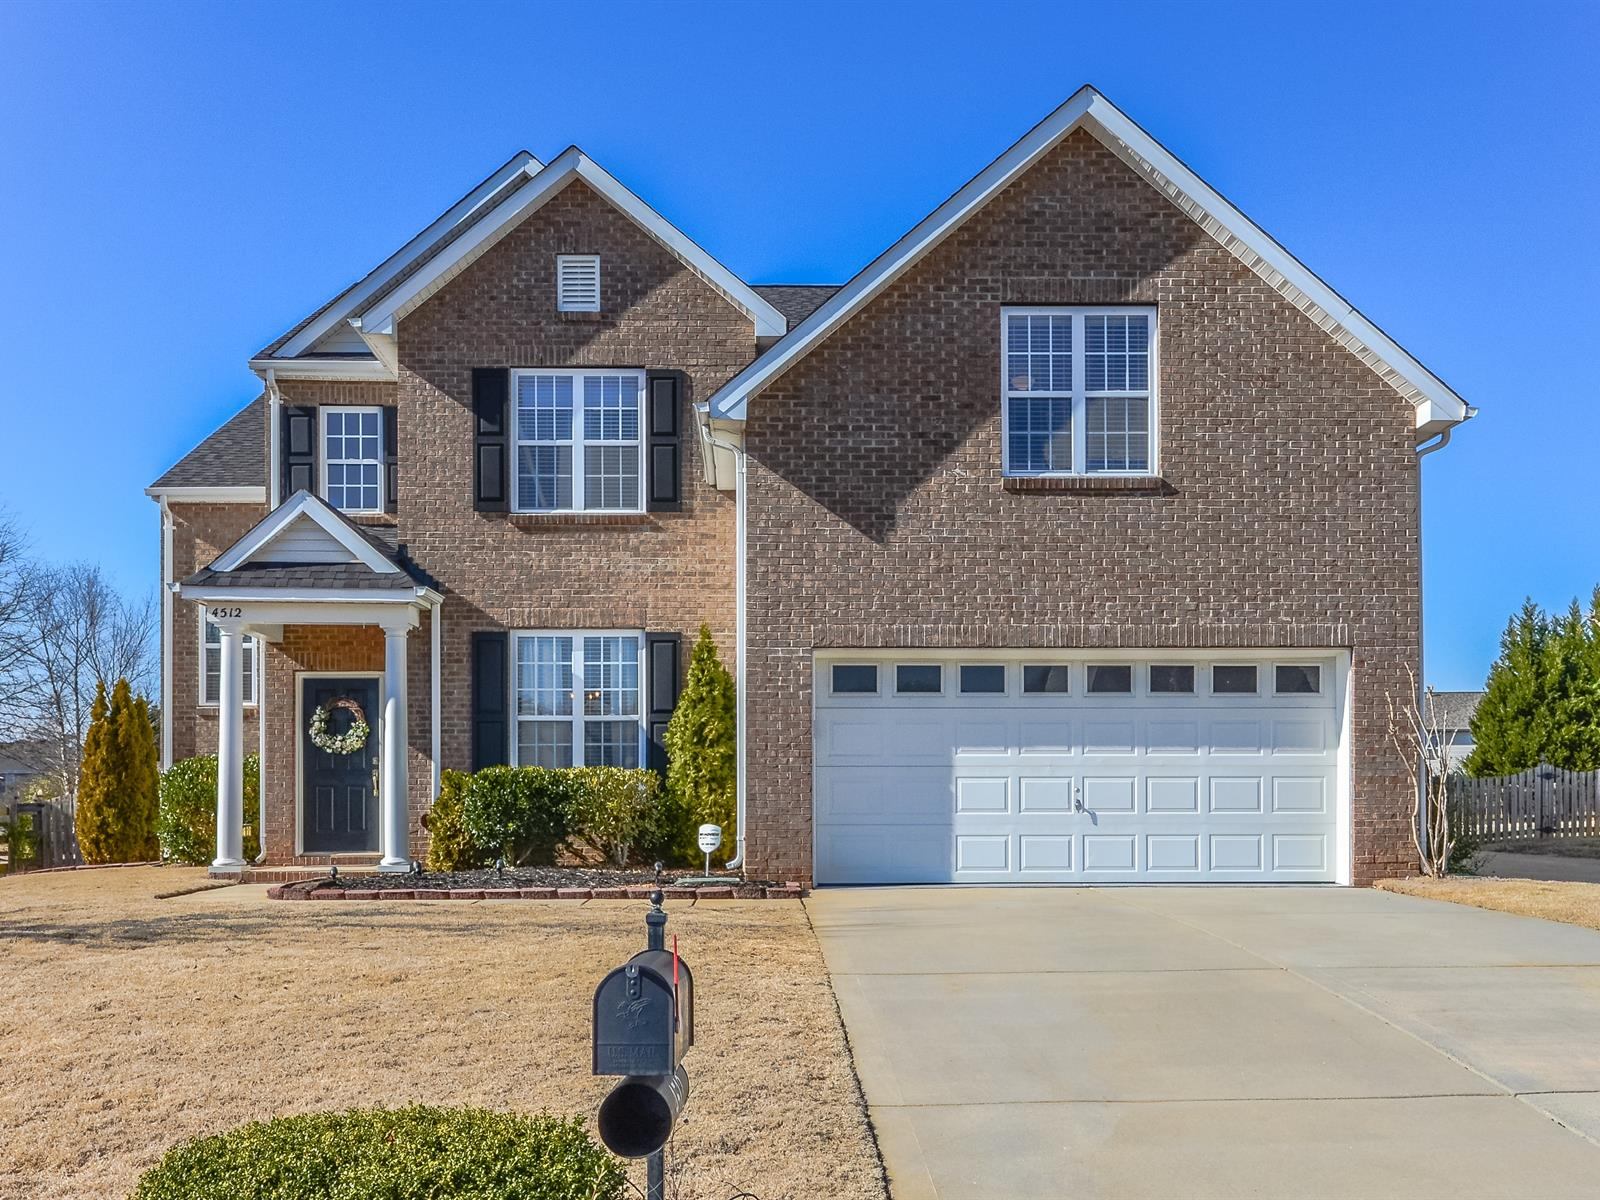 4512 sandtyn drive new towne village in waxhaw nc sol for 5 bedroom houses for sale in charlotte nc